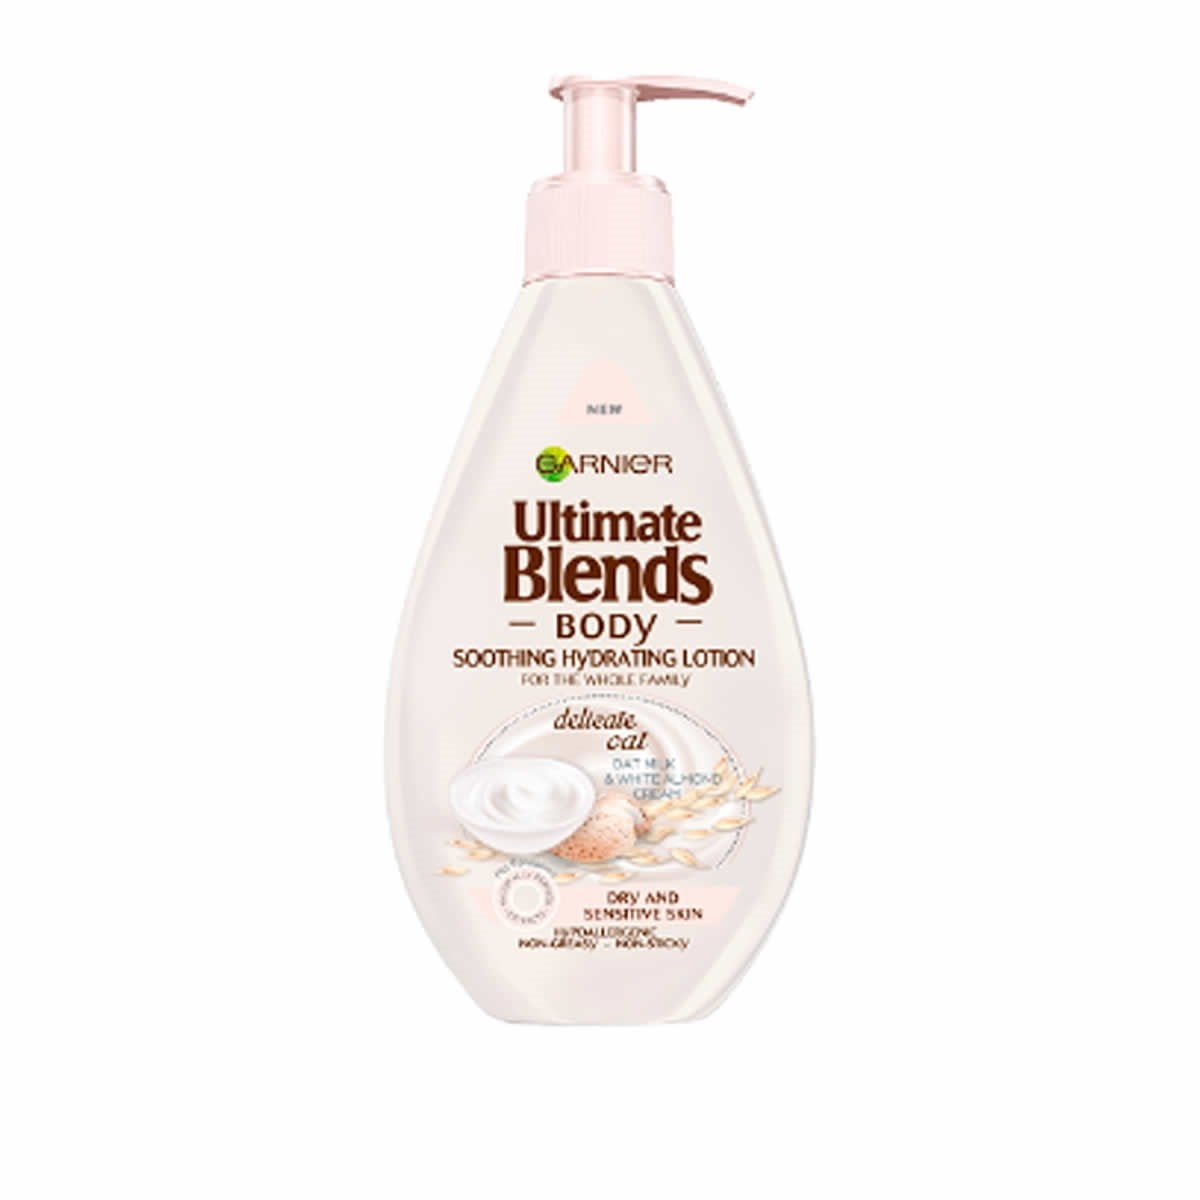 Garnier Ultimate Blends Body  Delicate Oat Milk Soothing Hydrating Lotion